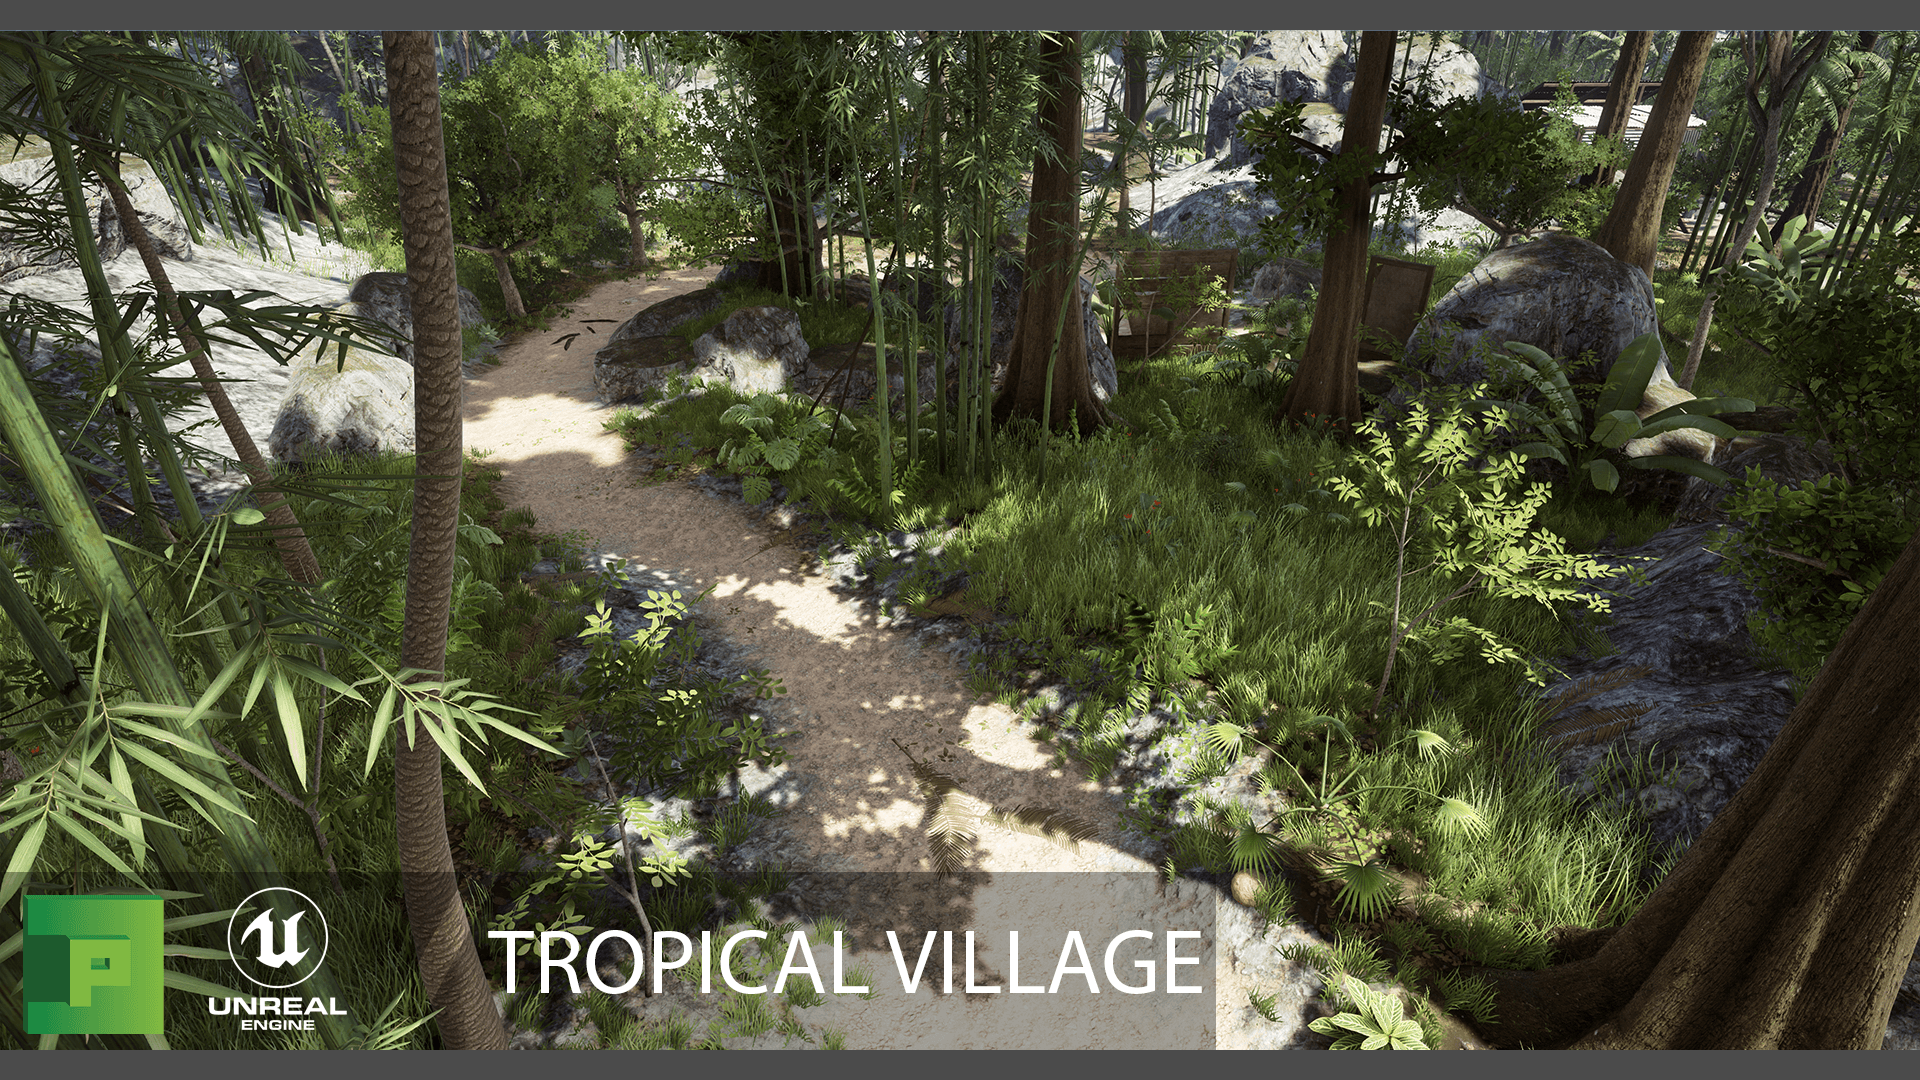 TropicalVillage_08